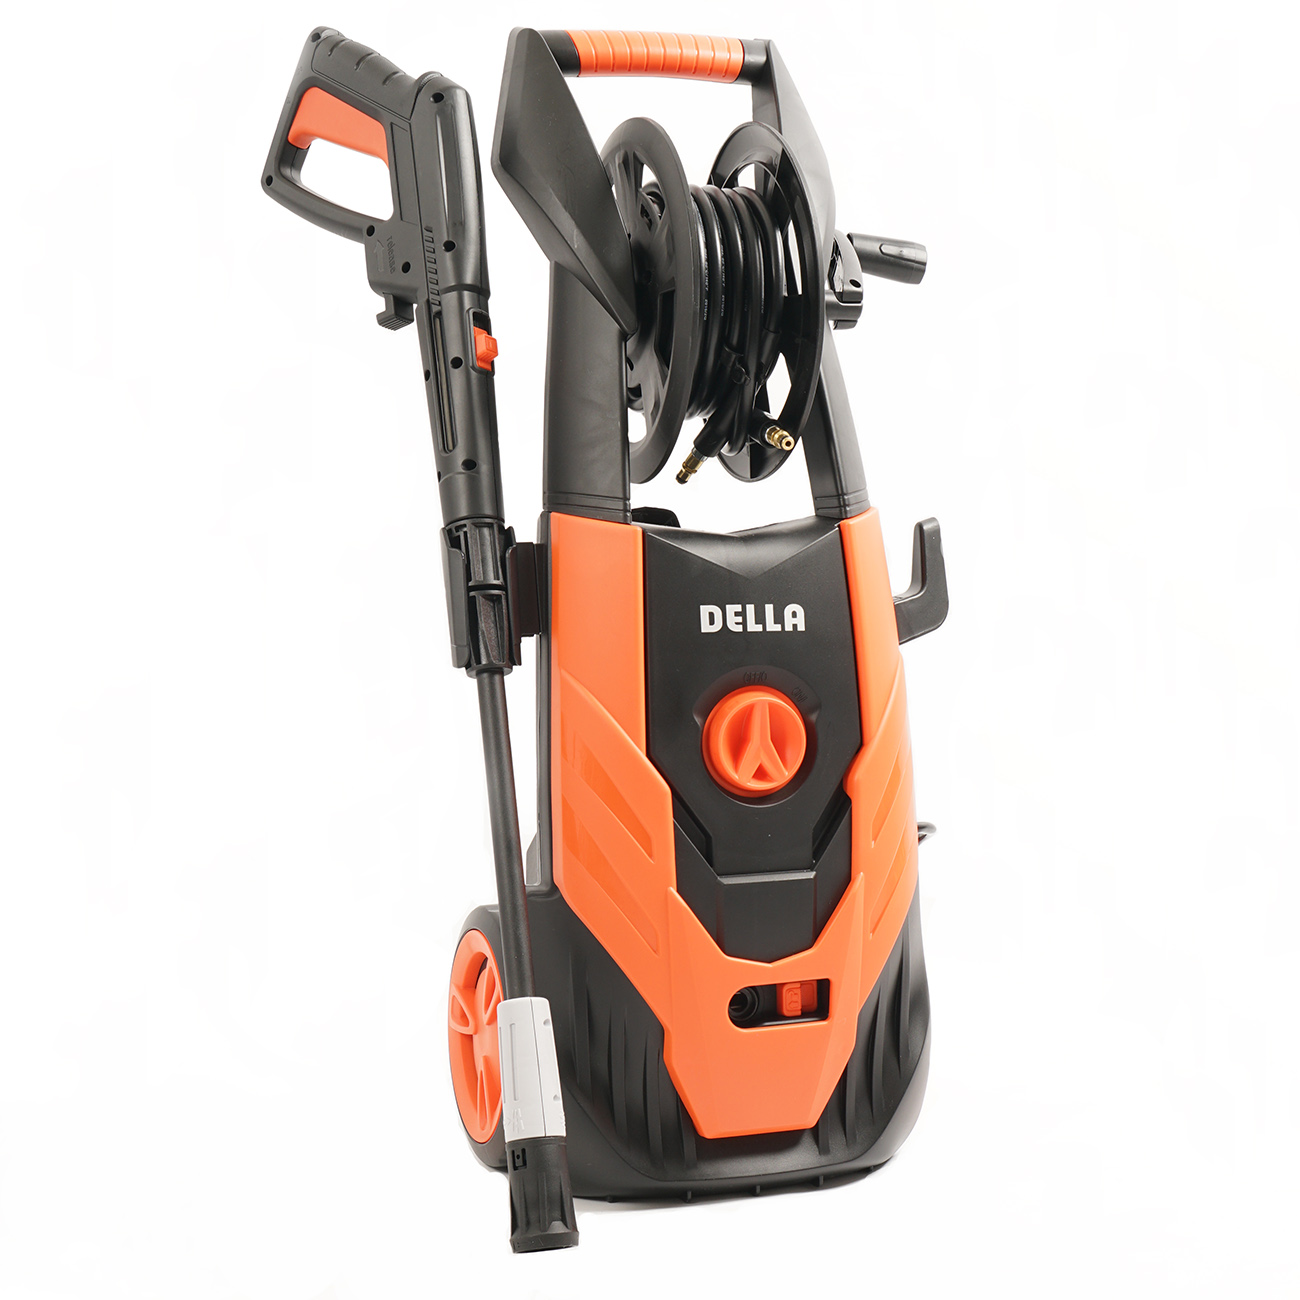 Della 2,300 PSI Burst Electric Pressure Washer 1.4 GPM, Power Hose Reel Gun Turbo